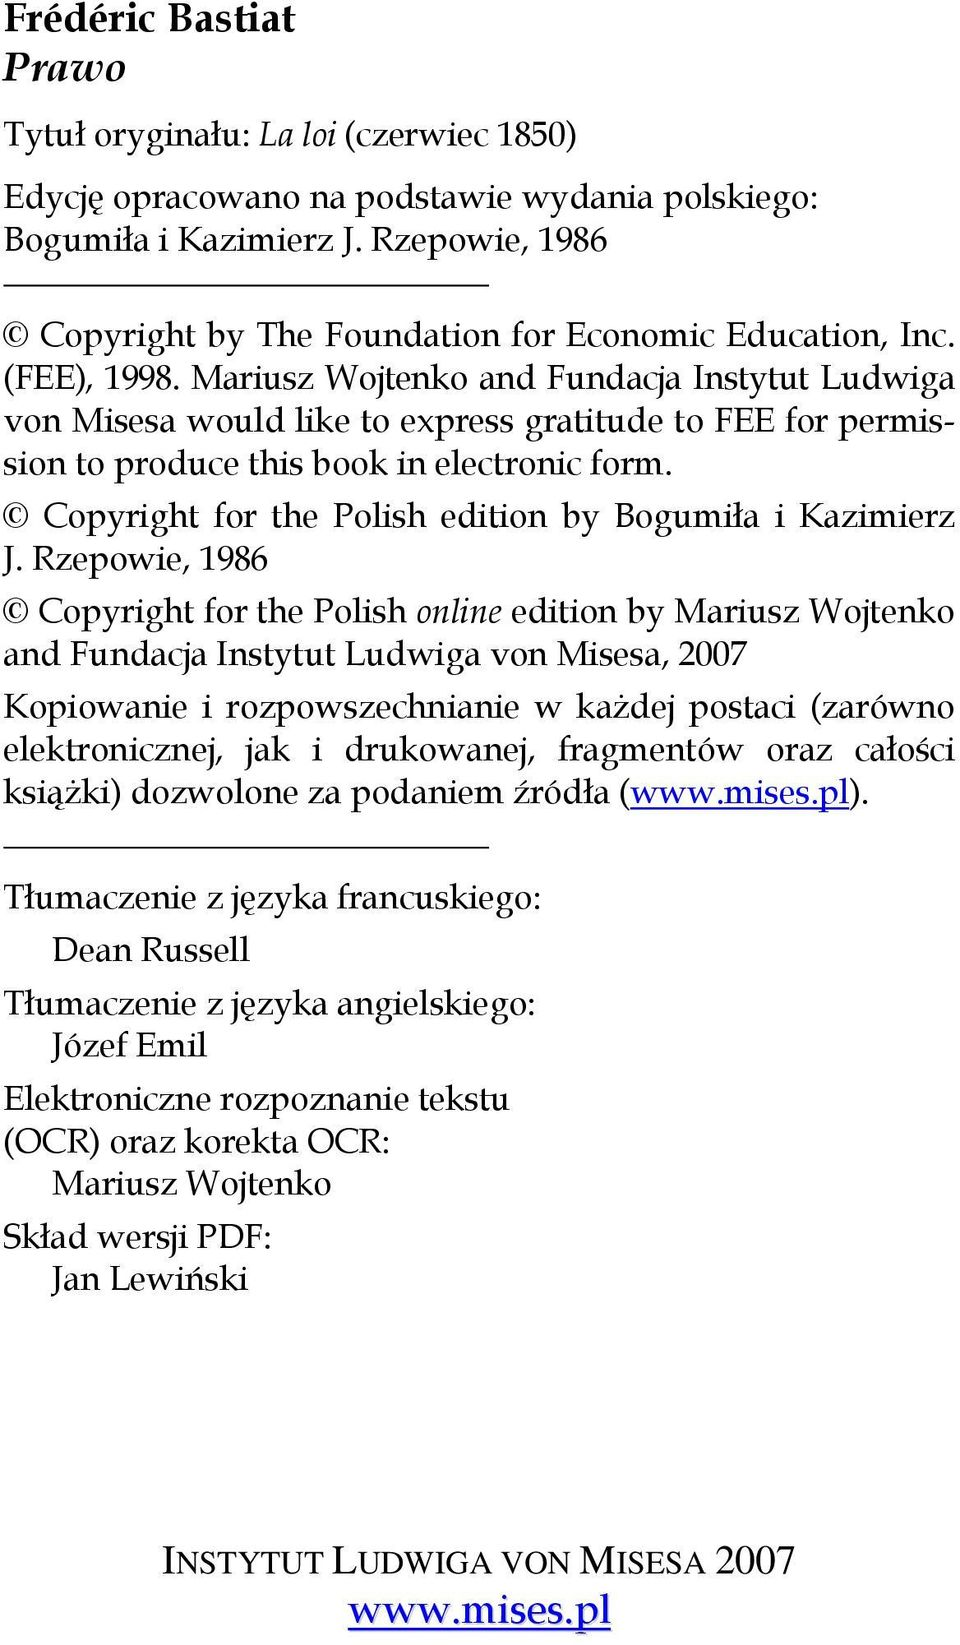 Mariusz Wojtenko and Fundacja Instytut Ludwiga von Misesa would like to express gratitude to FEE for permission to produce this book in electronic form.